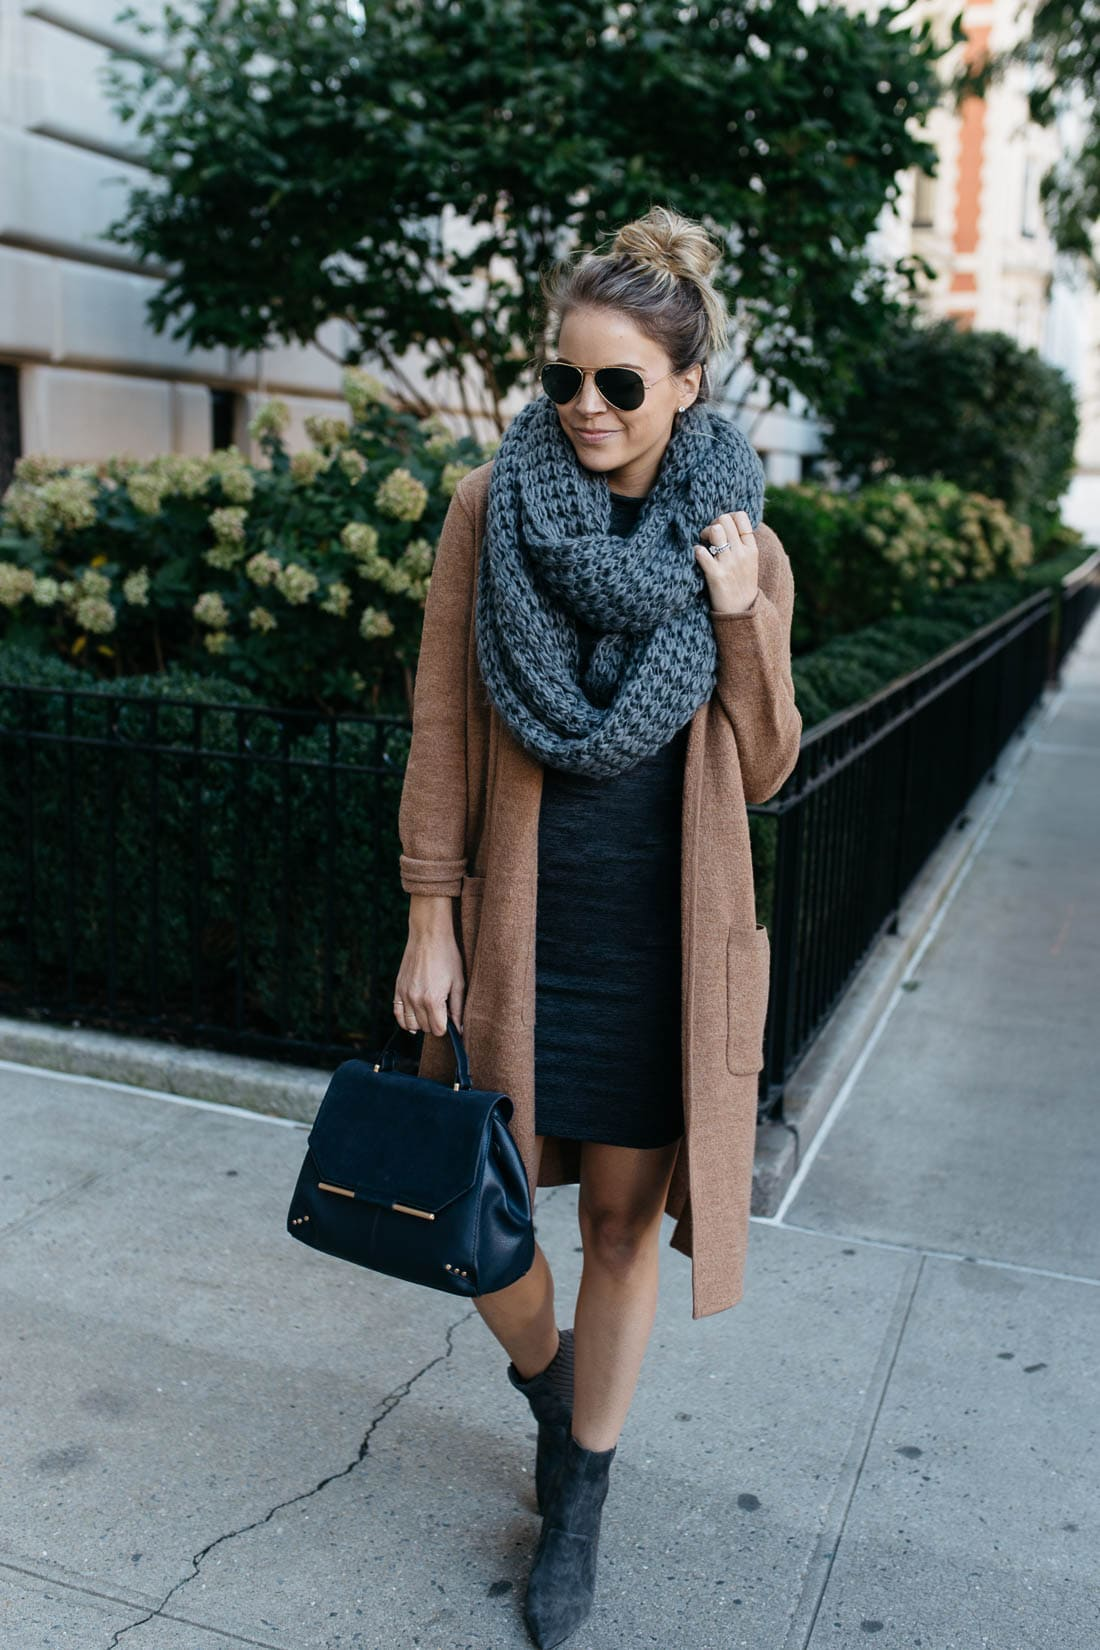 Fall outfit inspos